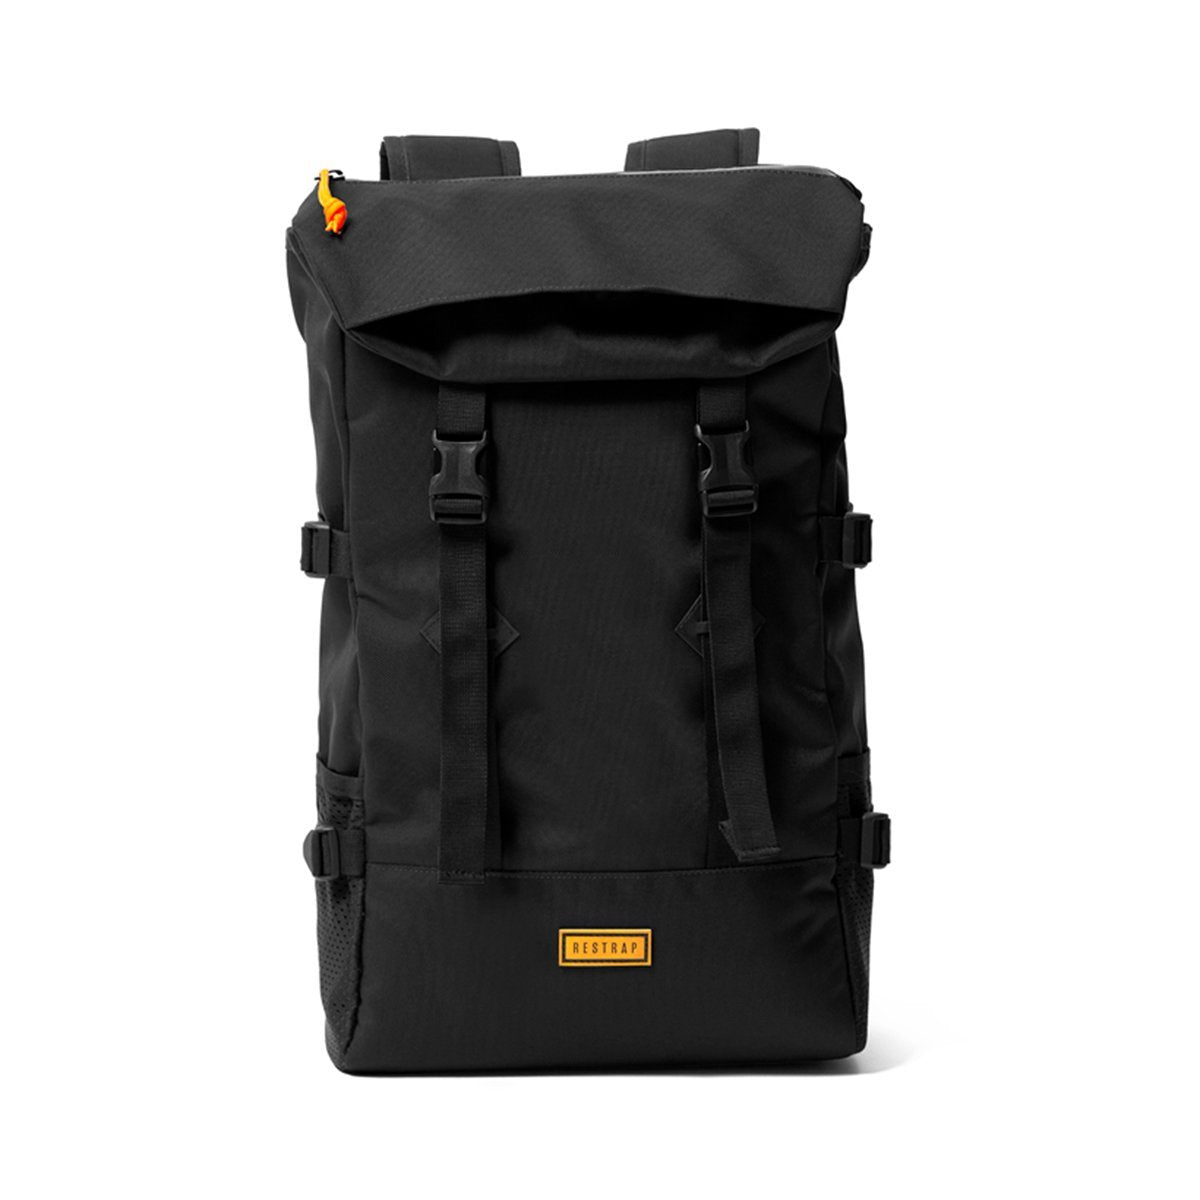 Restrap | Hilltop Backpack | Waterproof Cycling Bag | Commuter Bag | Black